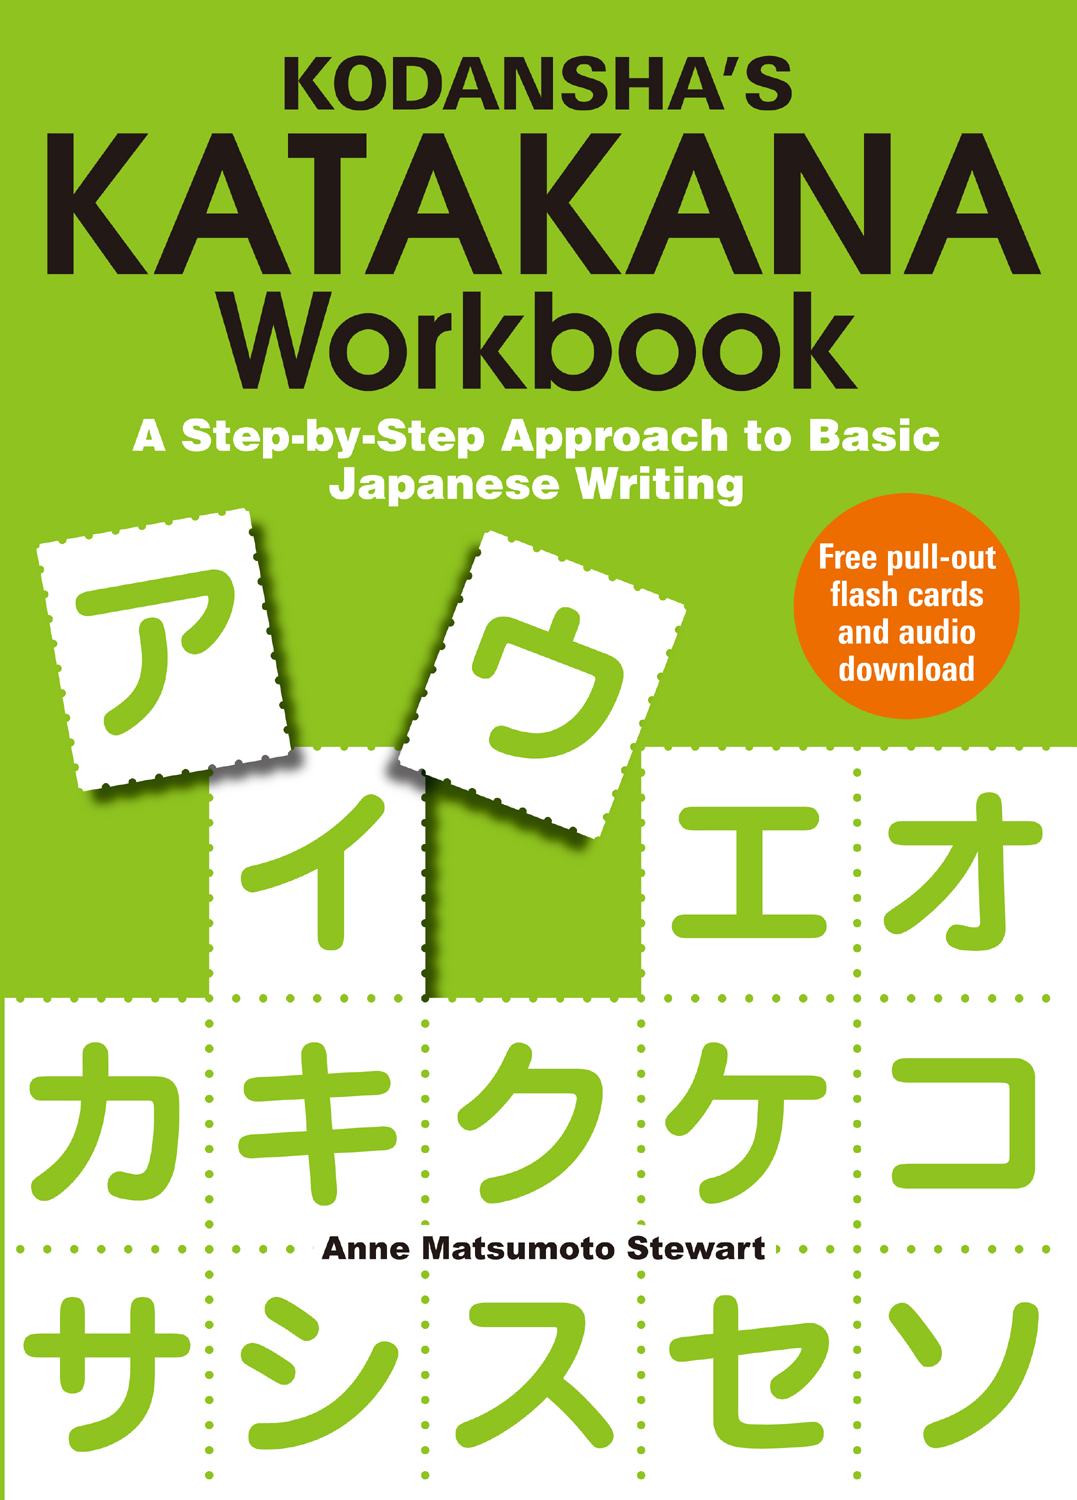 Cover of Kodansha's Katakana Workbook: A Step-by-Step Approach to Basic Japanese Writing.